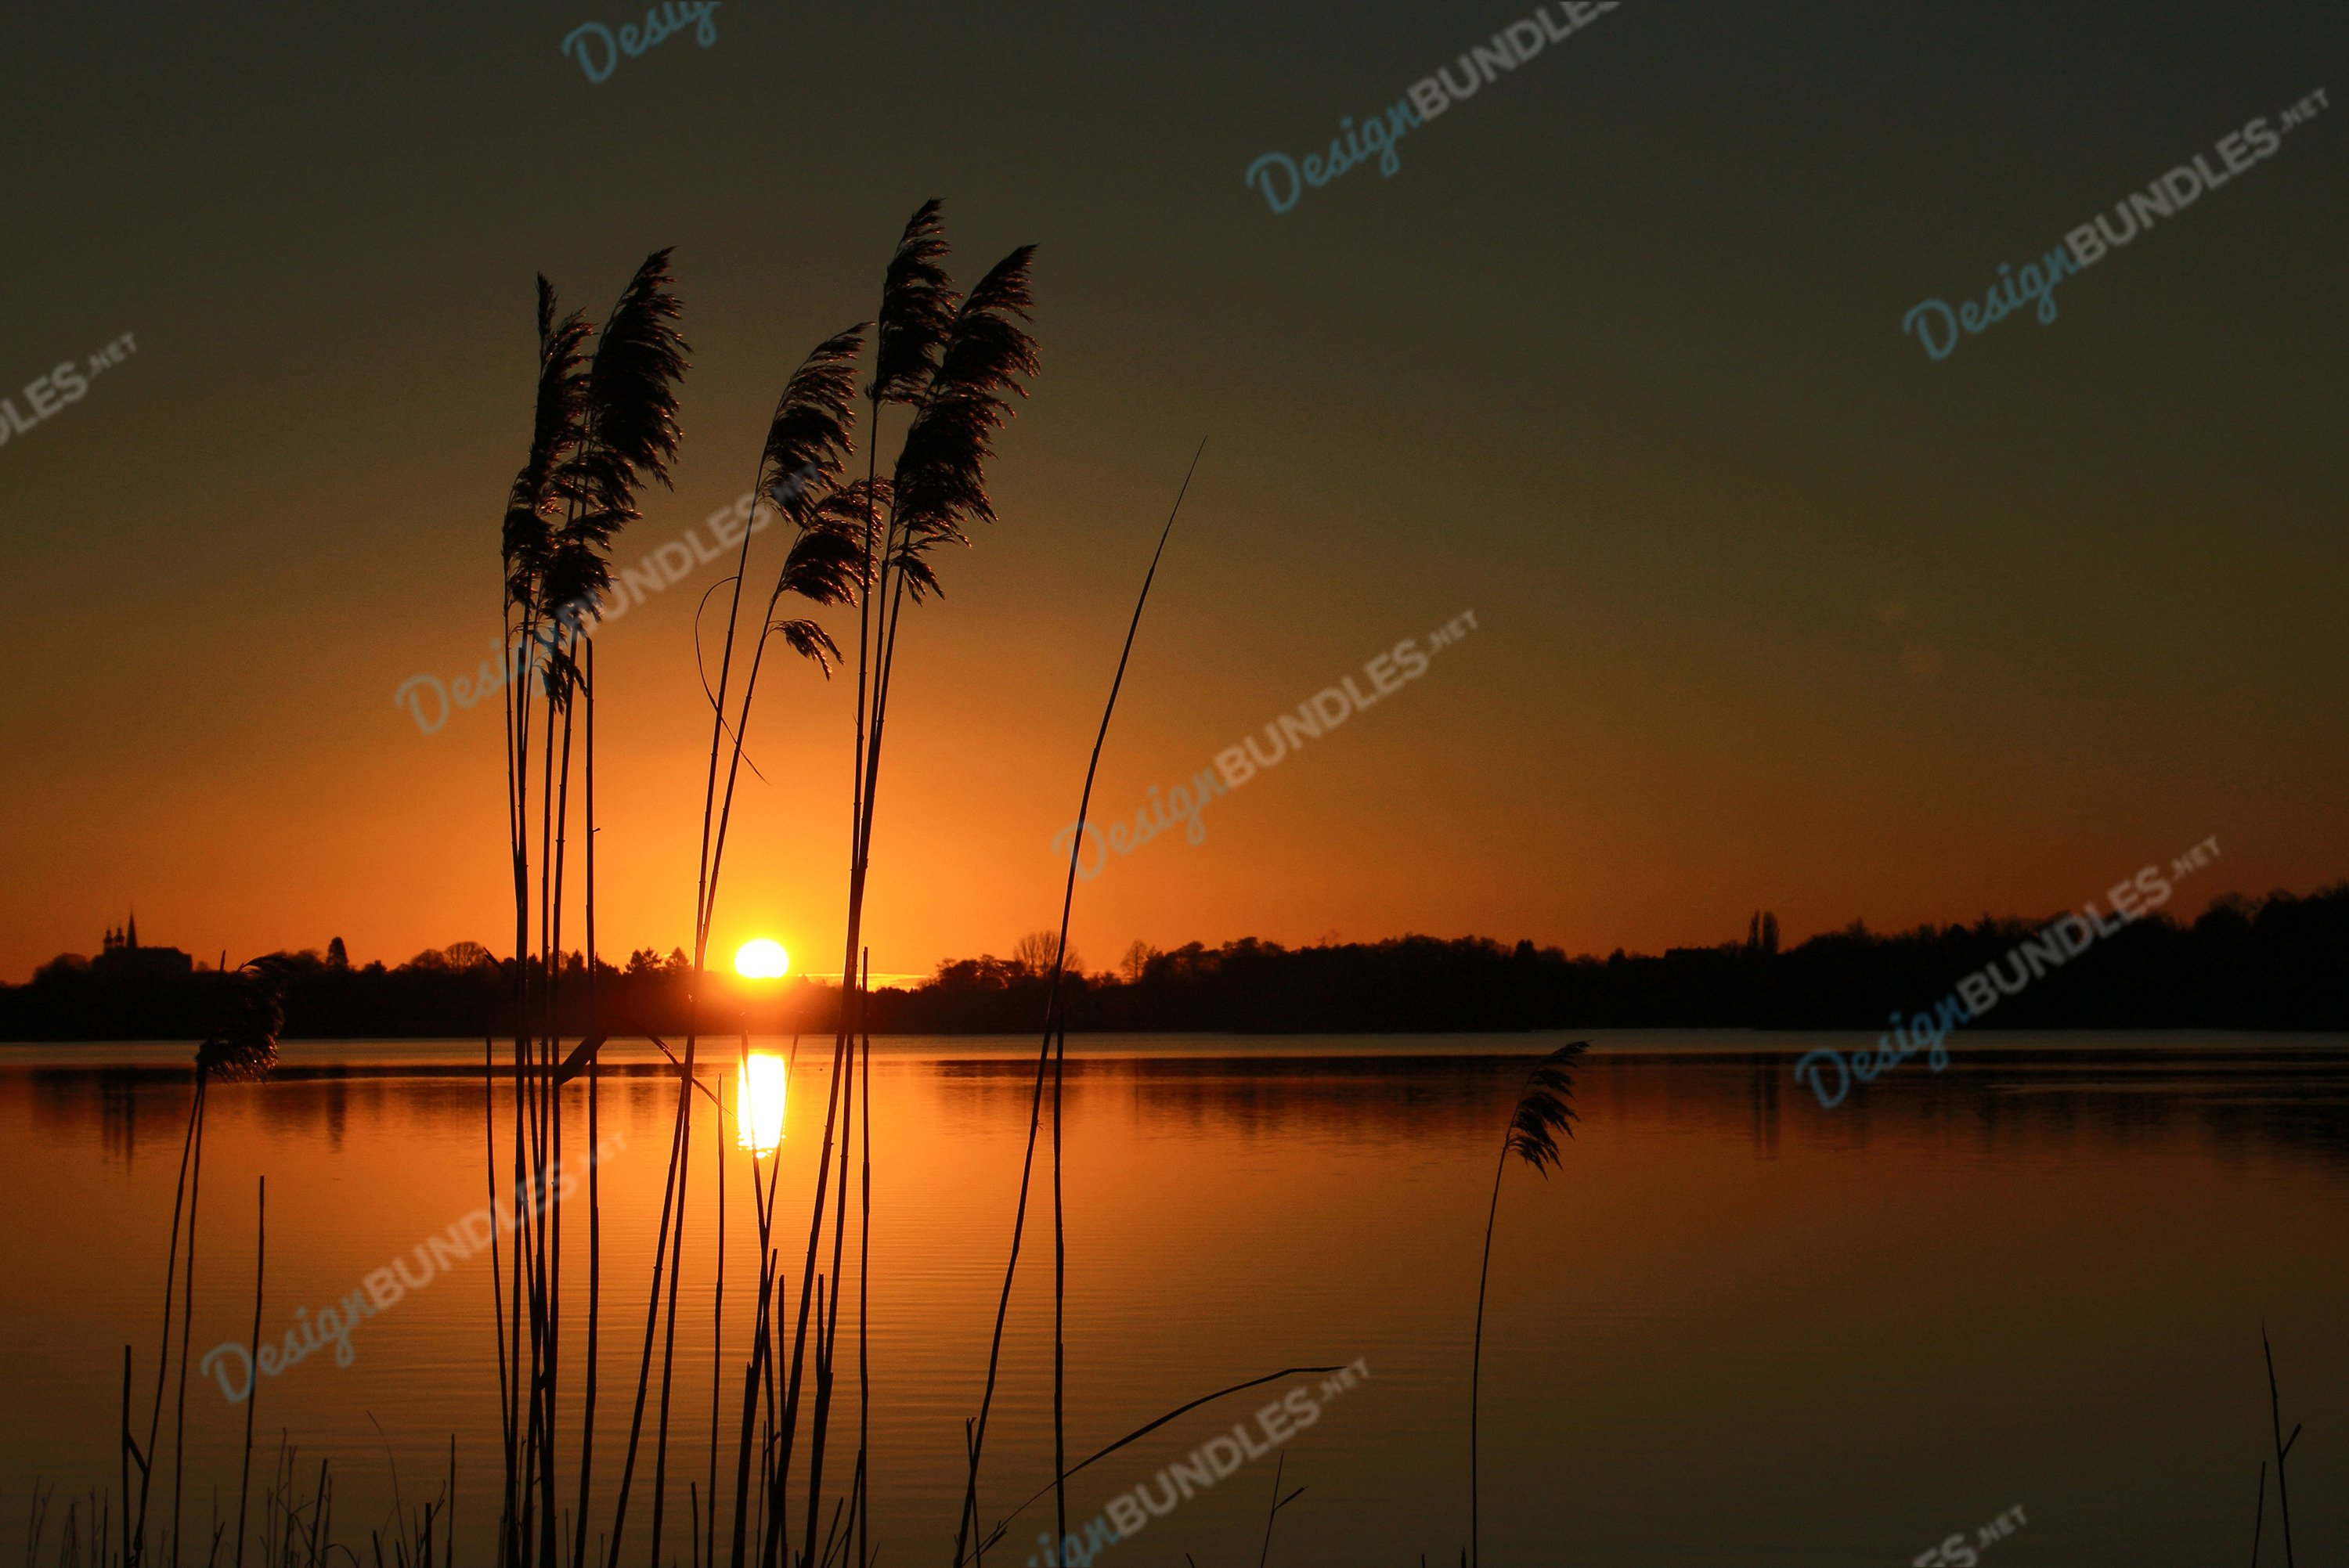 The sun sets in the gap of the weeds example image 1